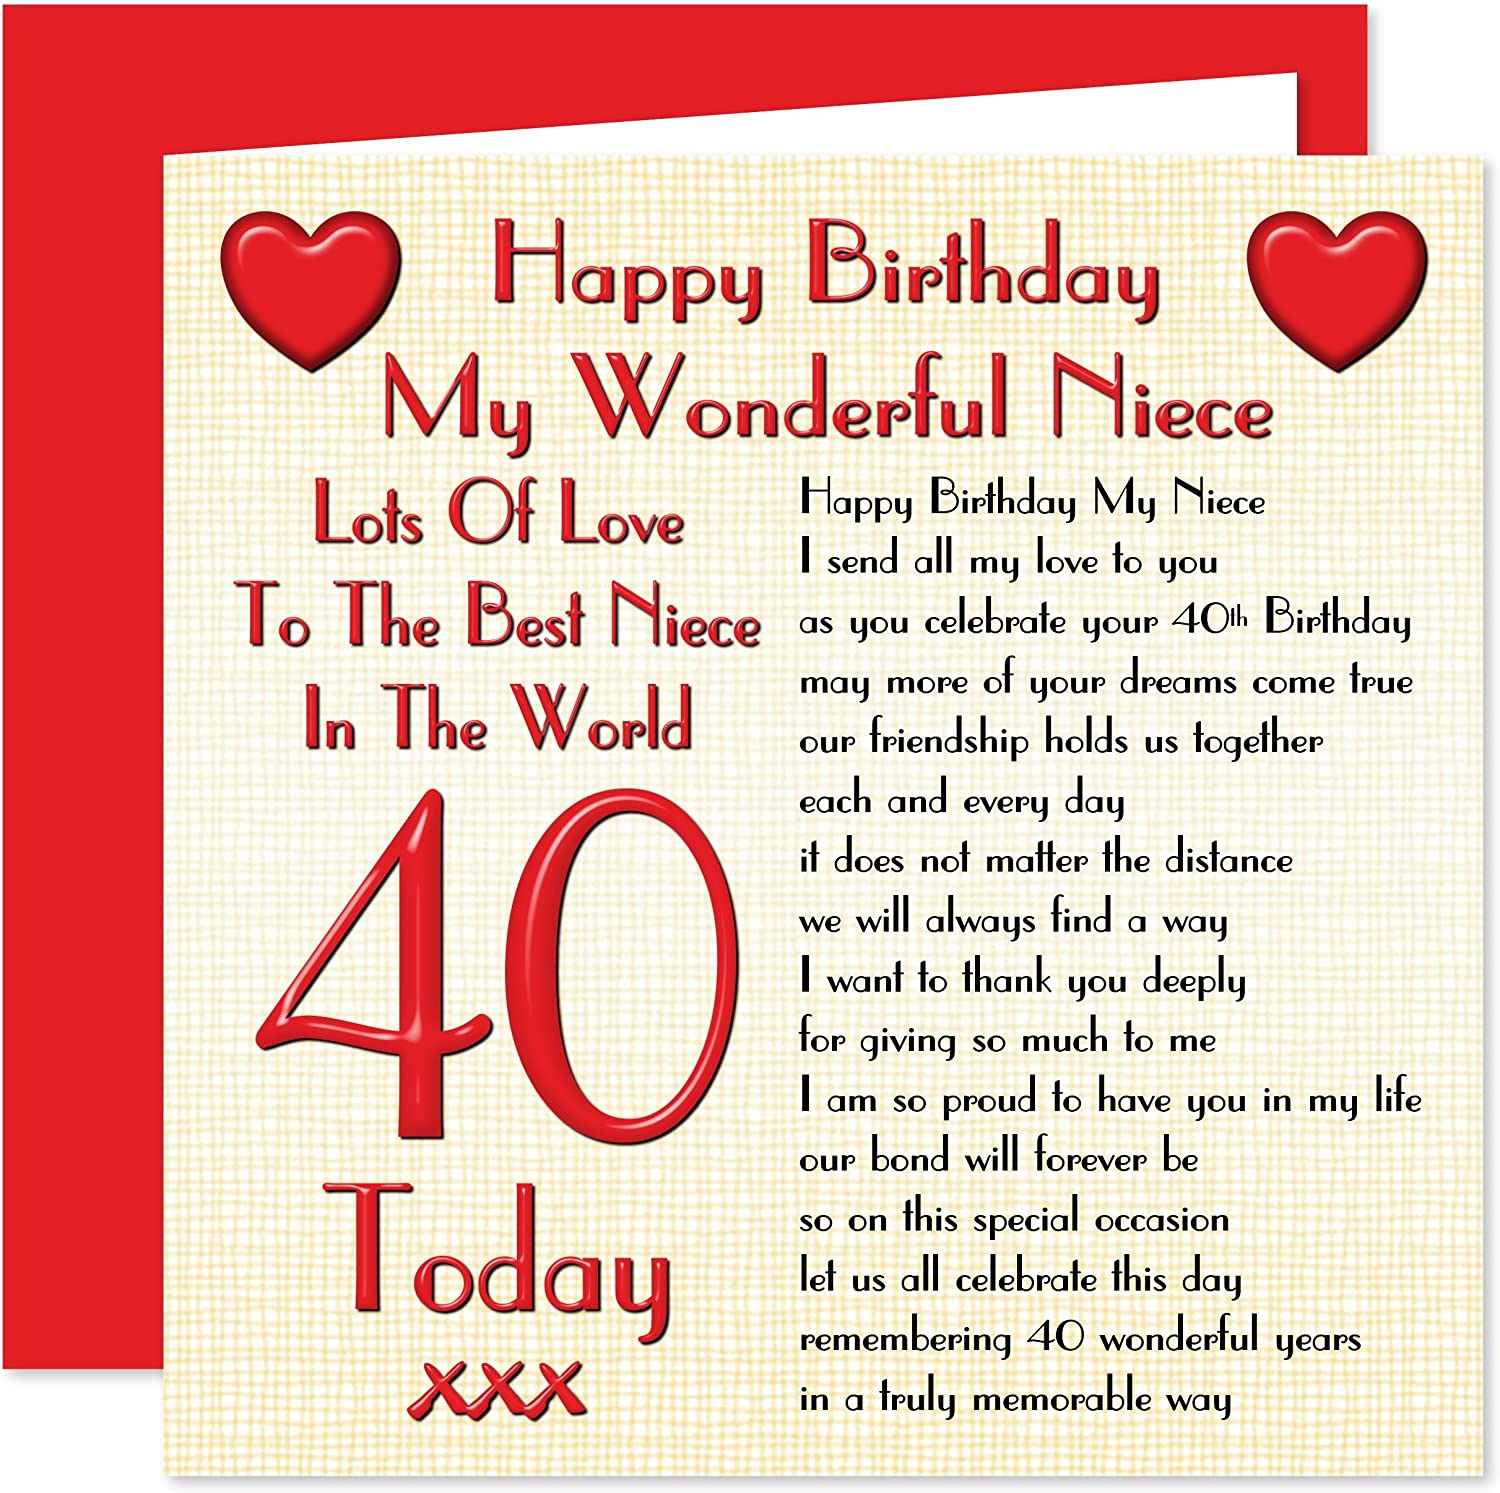 My Niece 40th Happy Birthday Card Lots Of Love To The Best Niece In The World 40 Today Amazon Co Uk Office Products